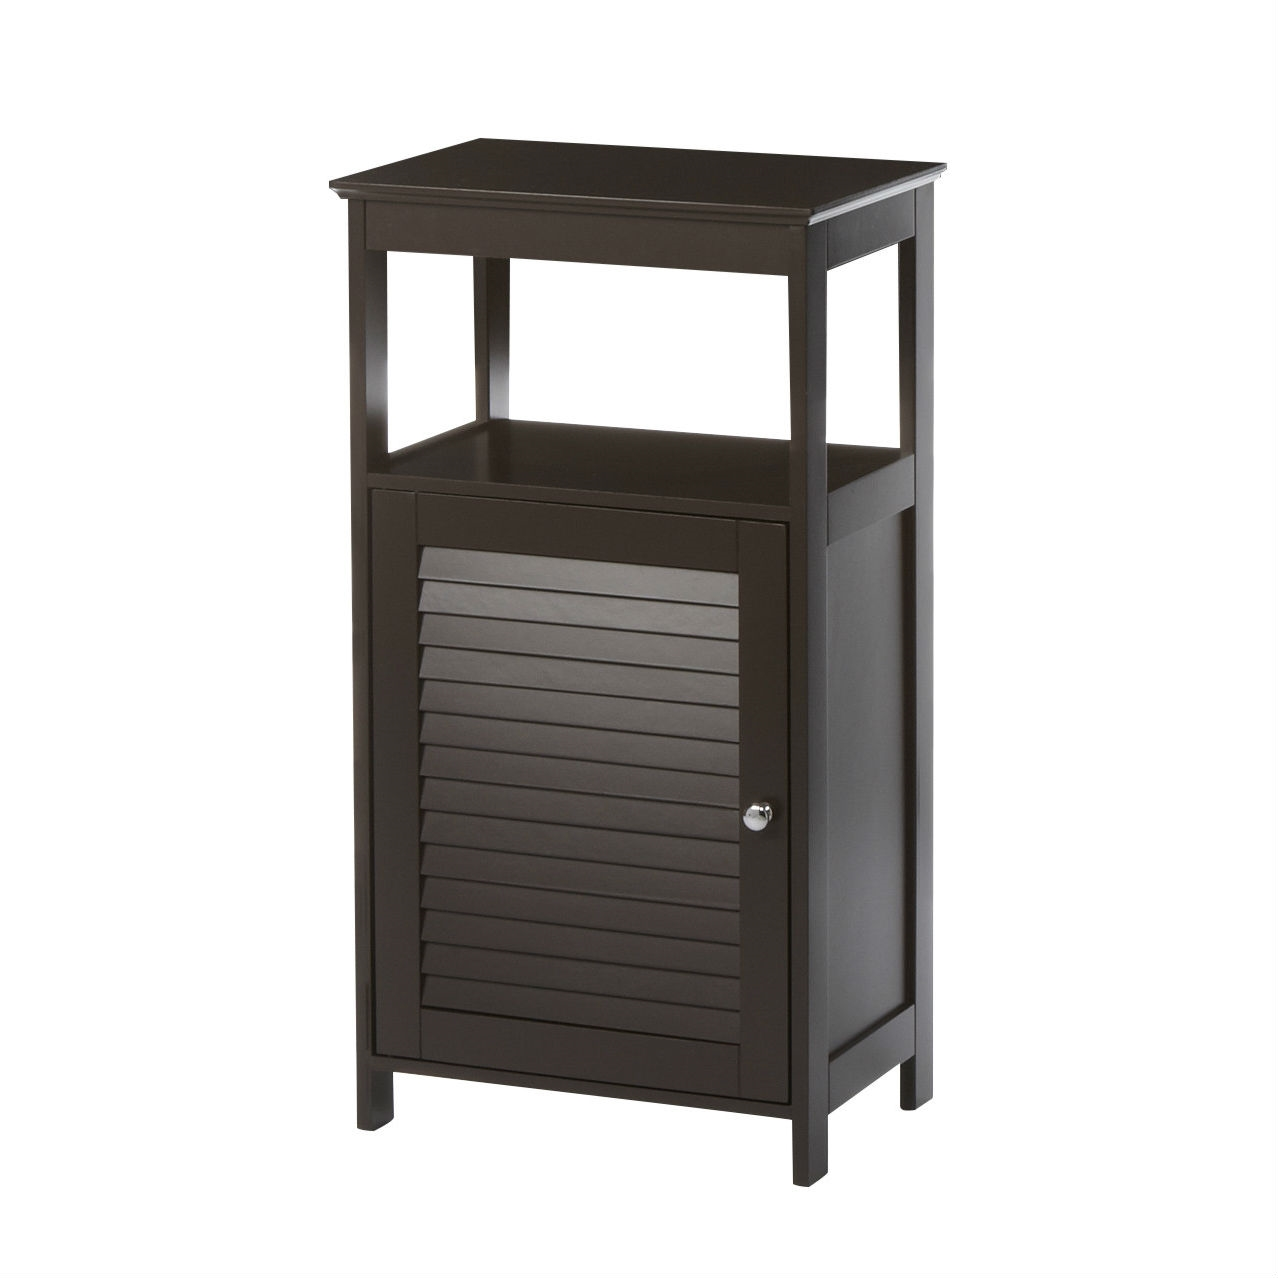 Modern Bathroom Floor Cabinet Free Standing Storage Unit in Espresso ...